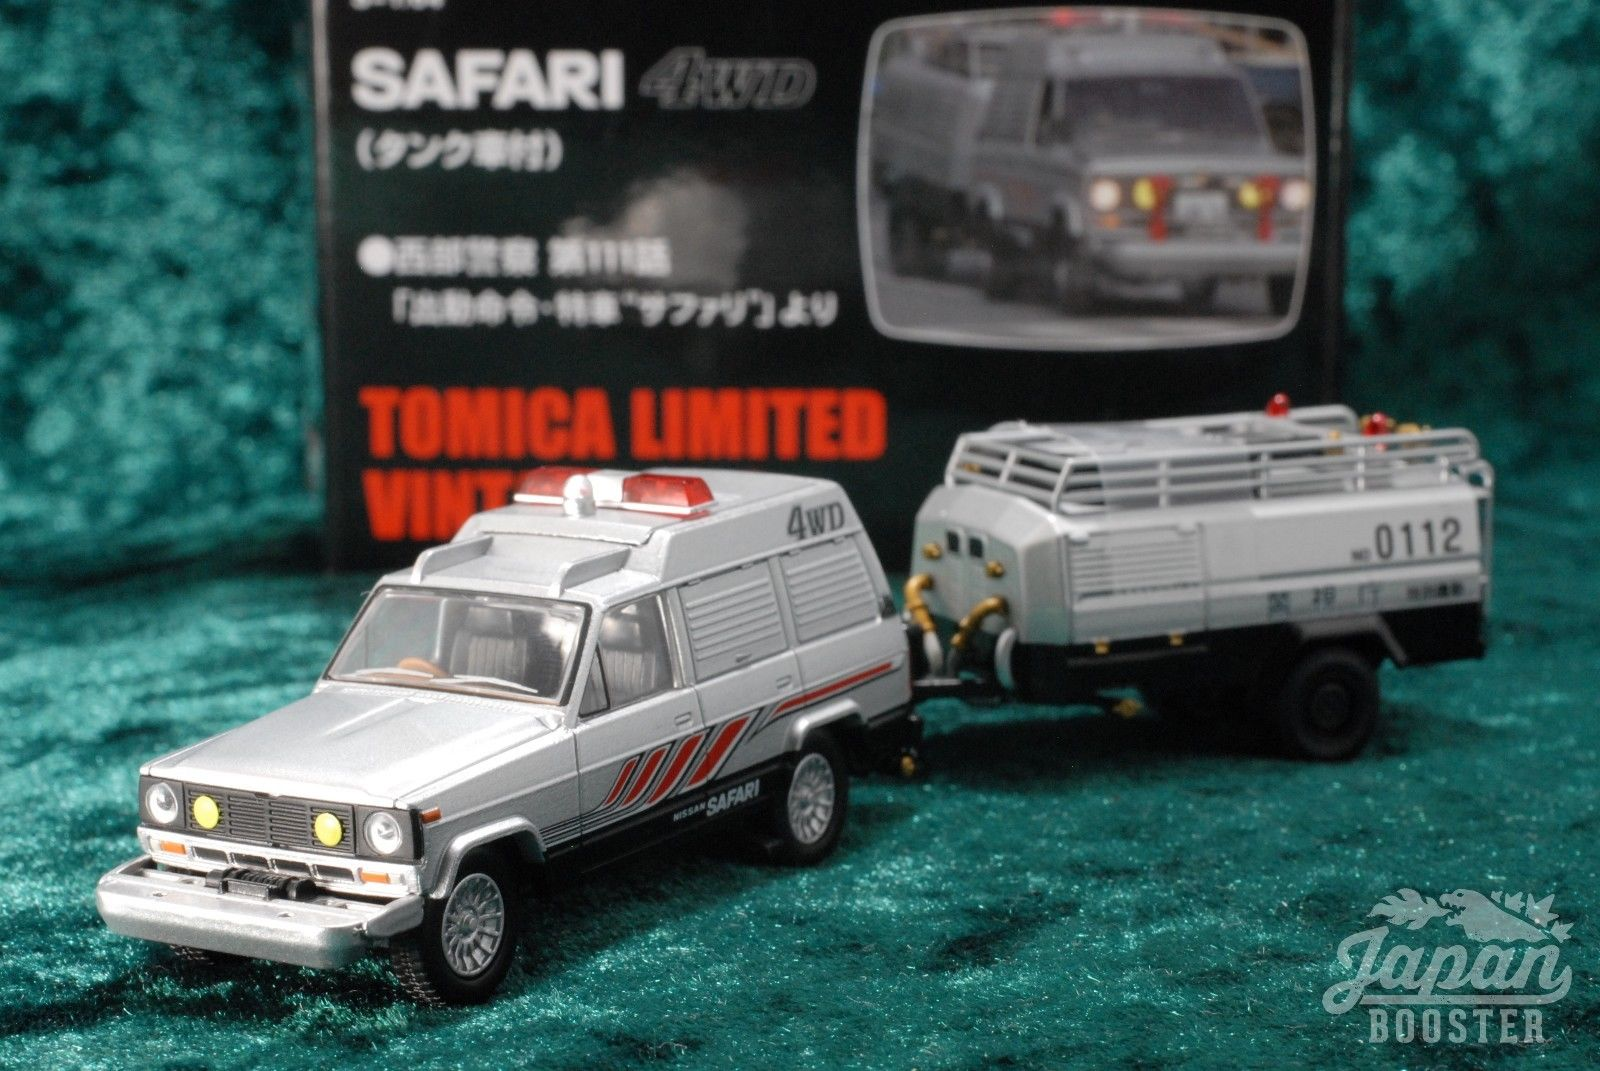 Tomica Limited Vintage goes to Europe and Gran Turismo ...